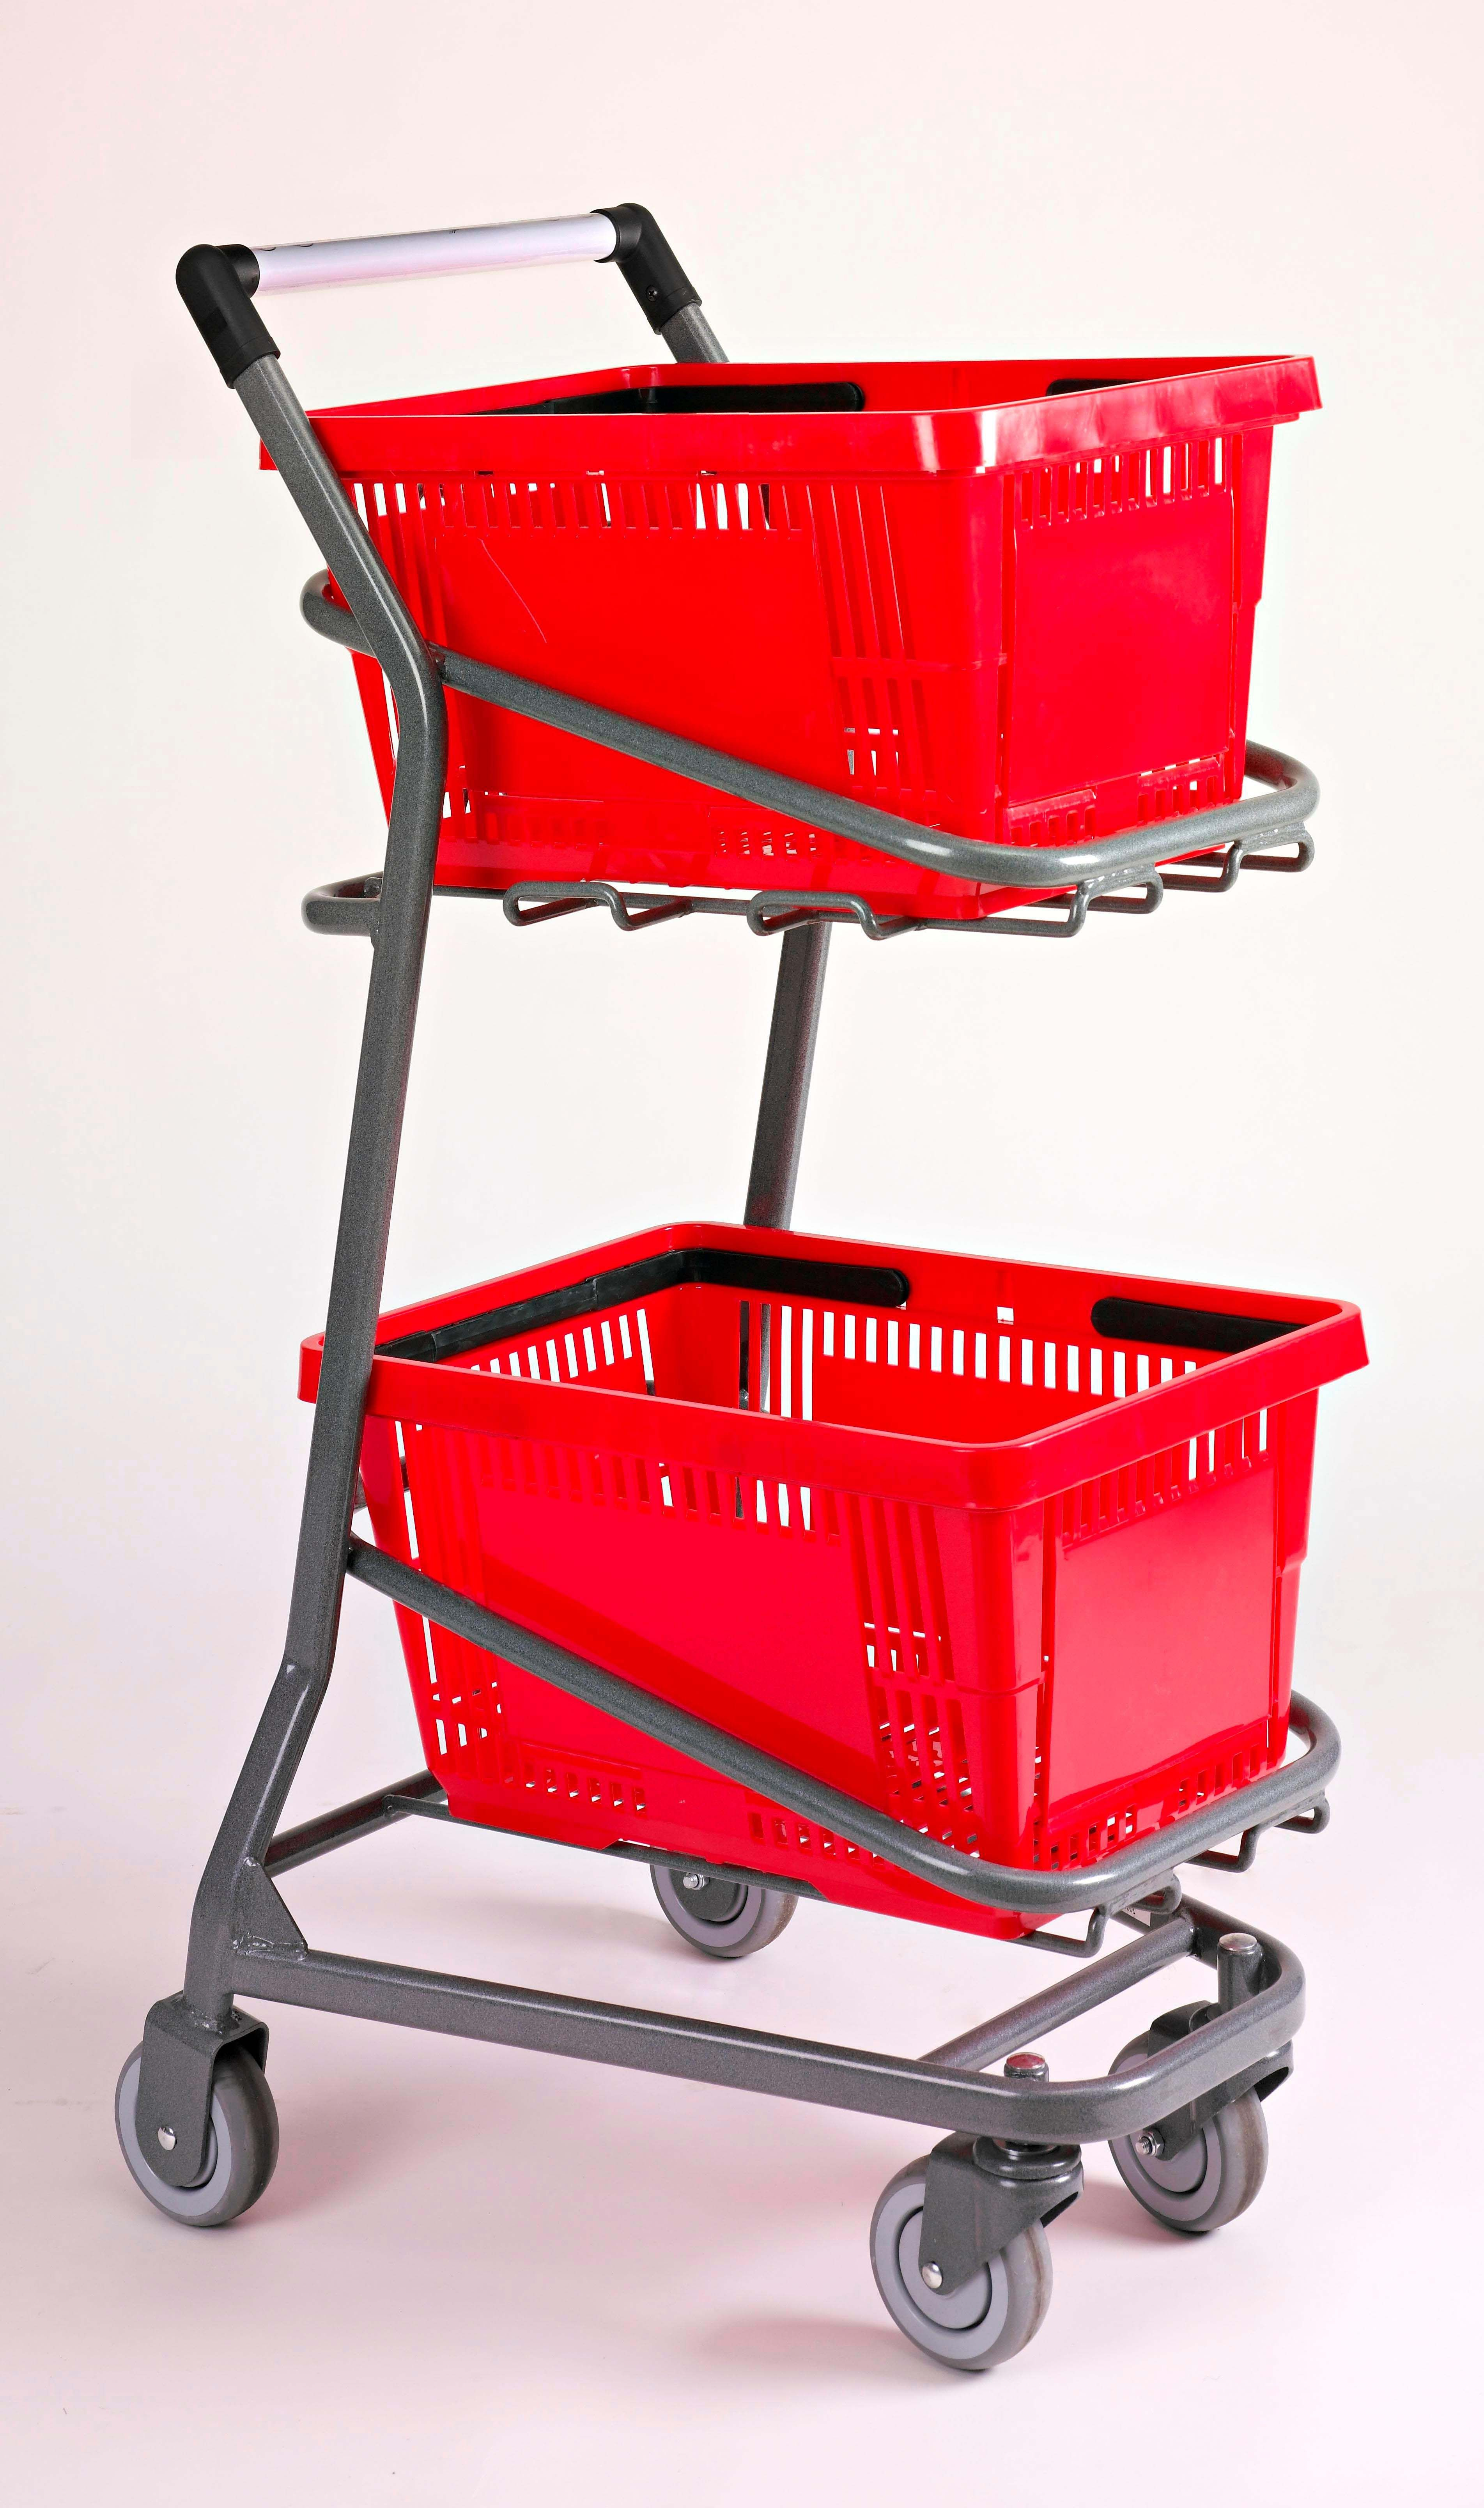 Ez Cart Hand Basket Cart Indoff Store Fixtures And Equipment Shopping Cart Grocery Basket Supermarket Design